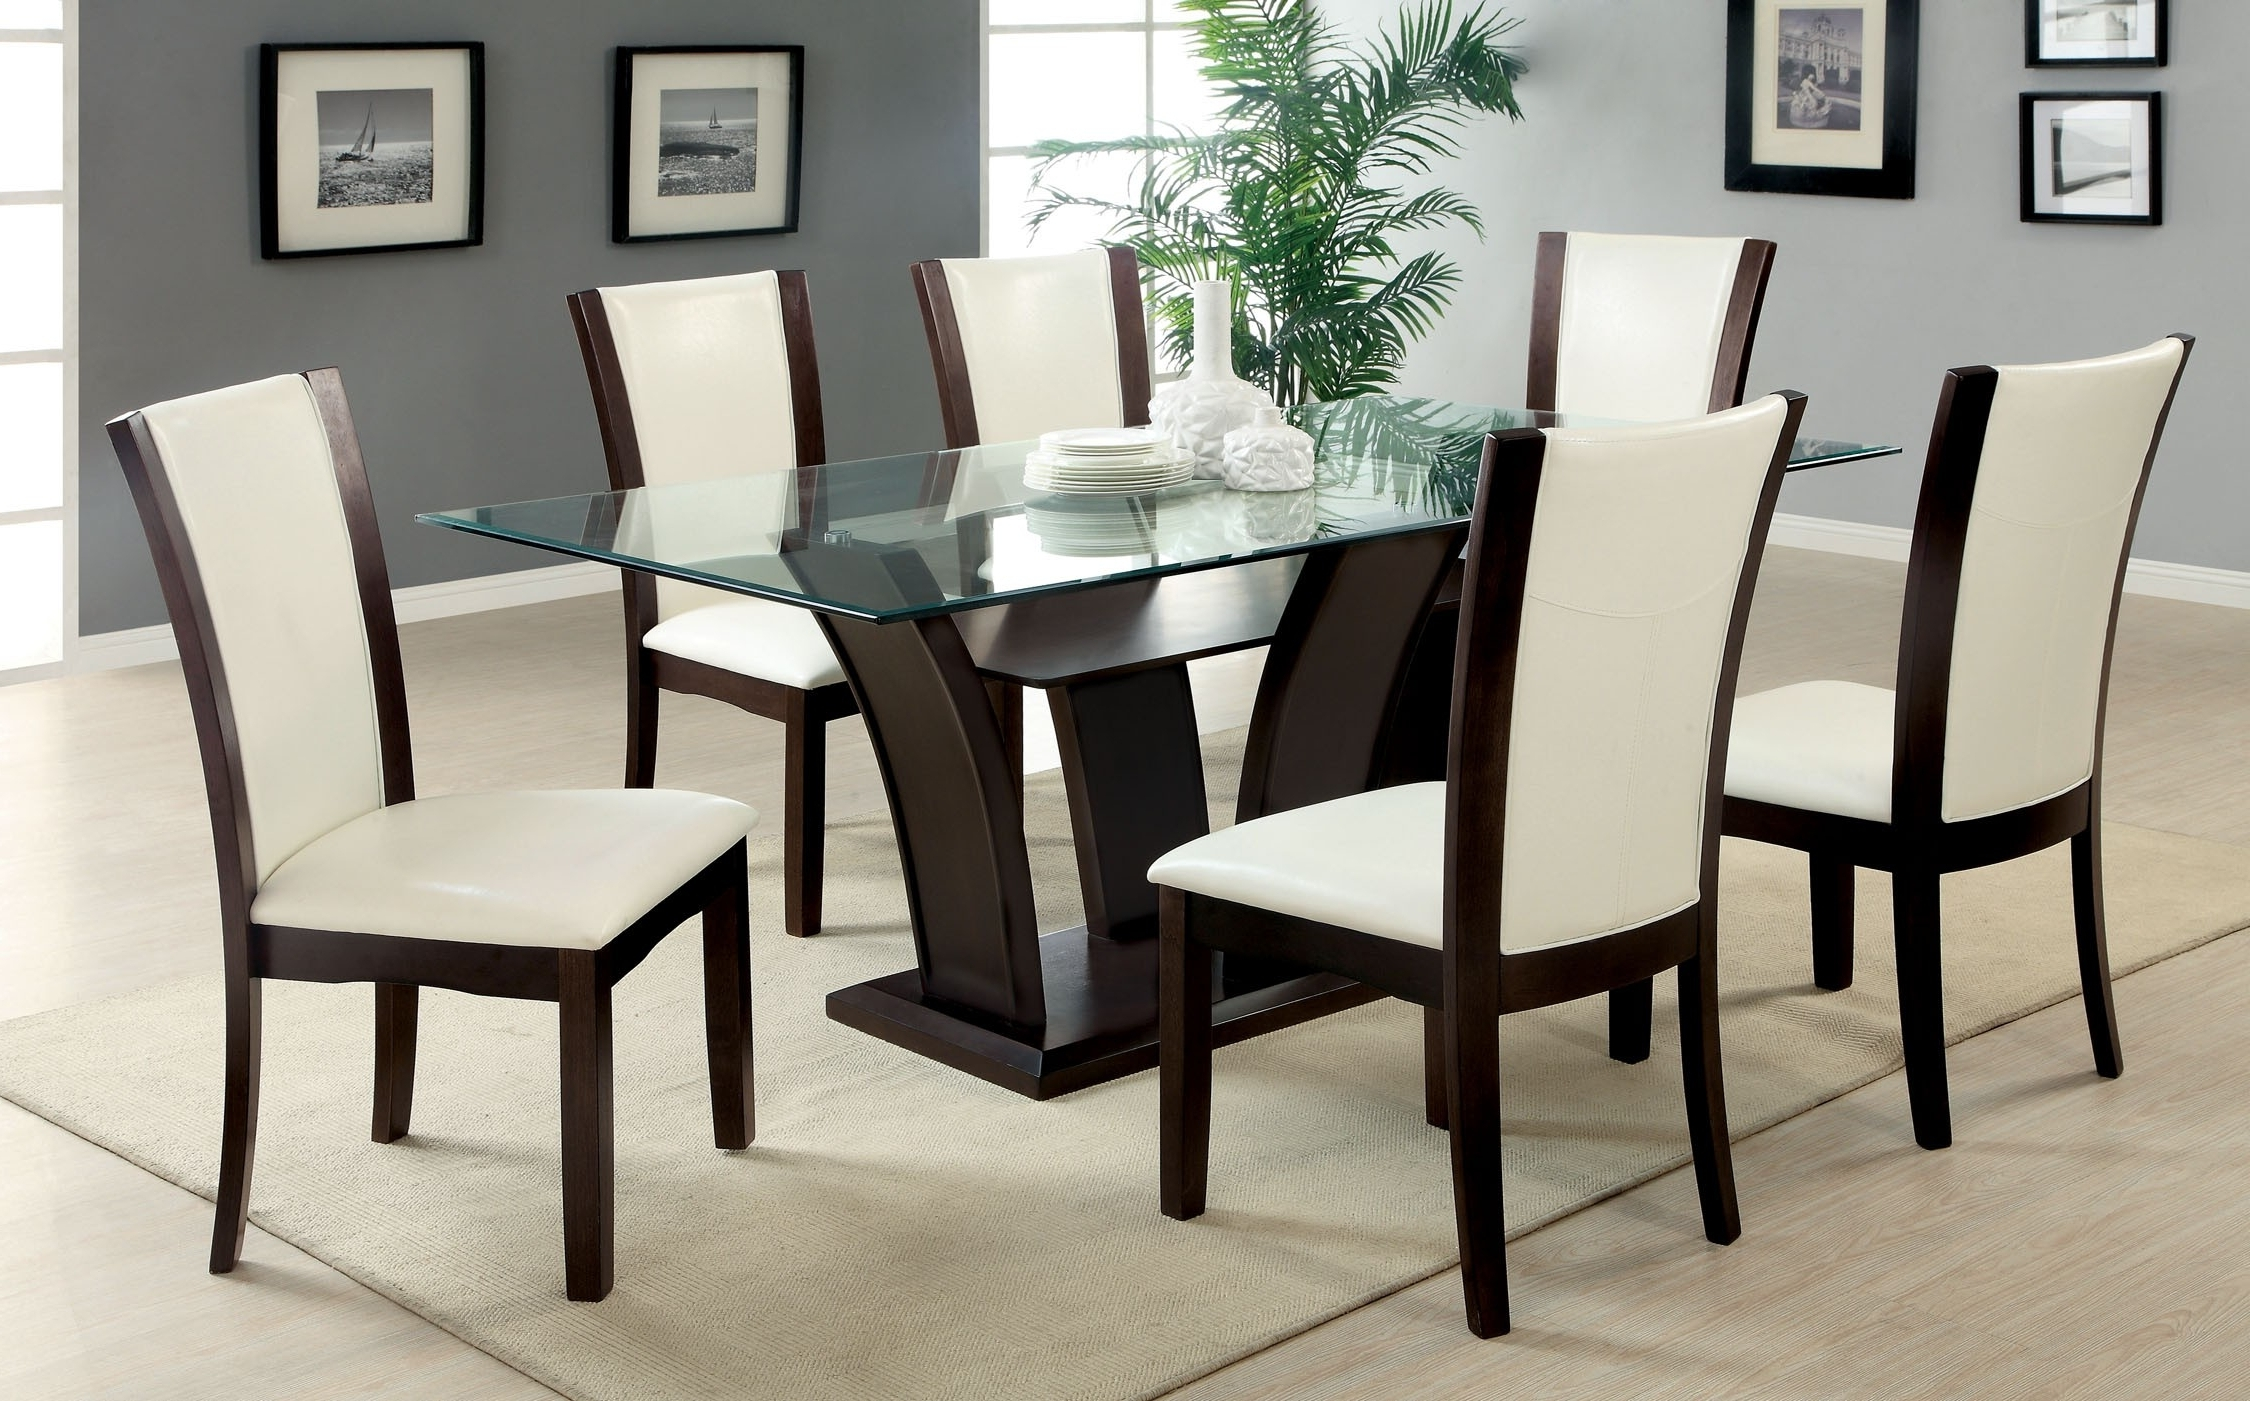 Glass Dining Table Sets 6 Chairs • Table Setting Ideas Throughout Trendy Glass Dining Tables 6 Chairs (Gallery 5 of 25)